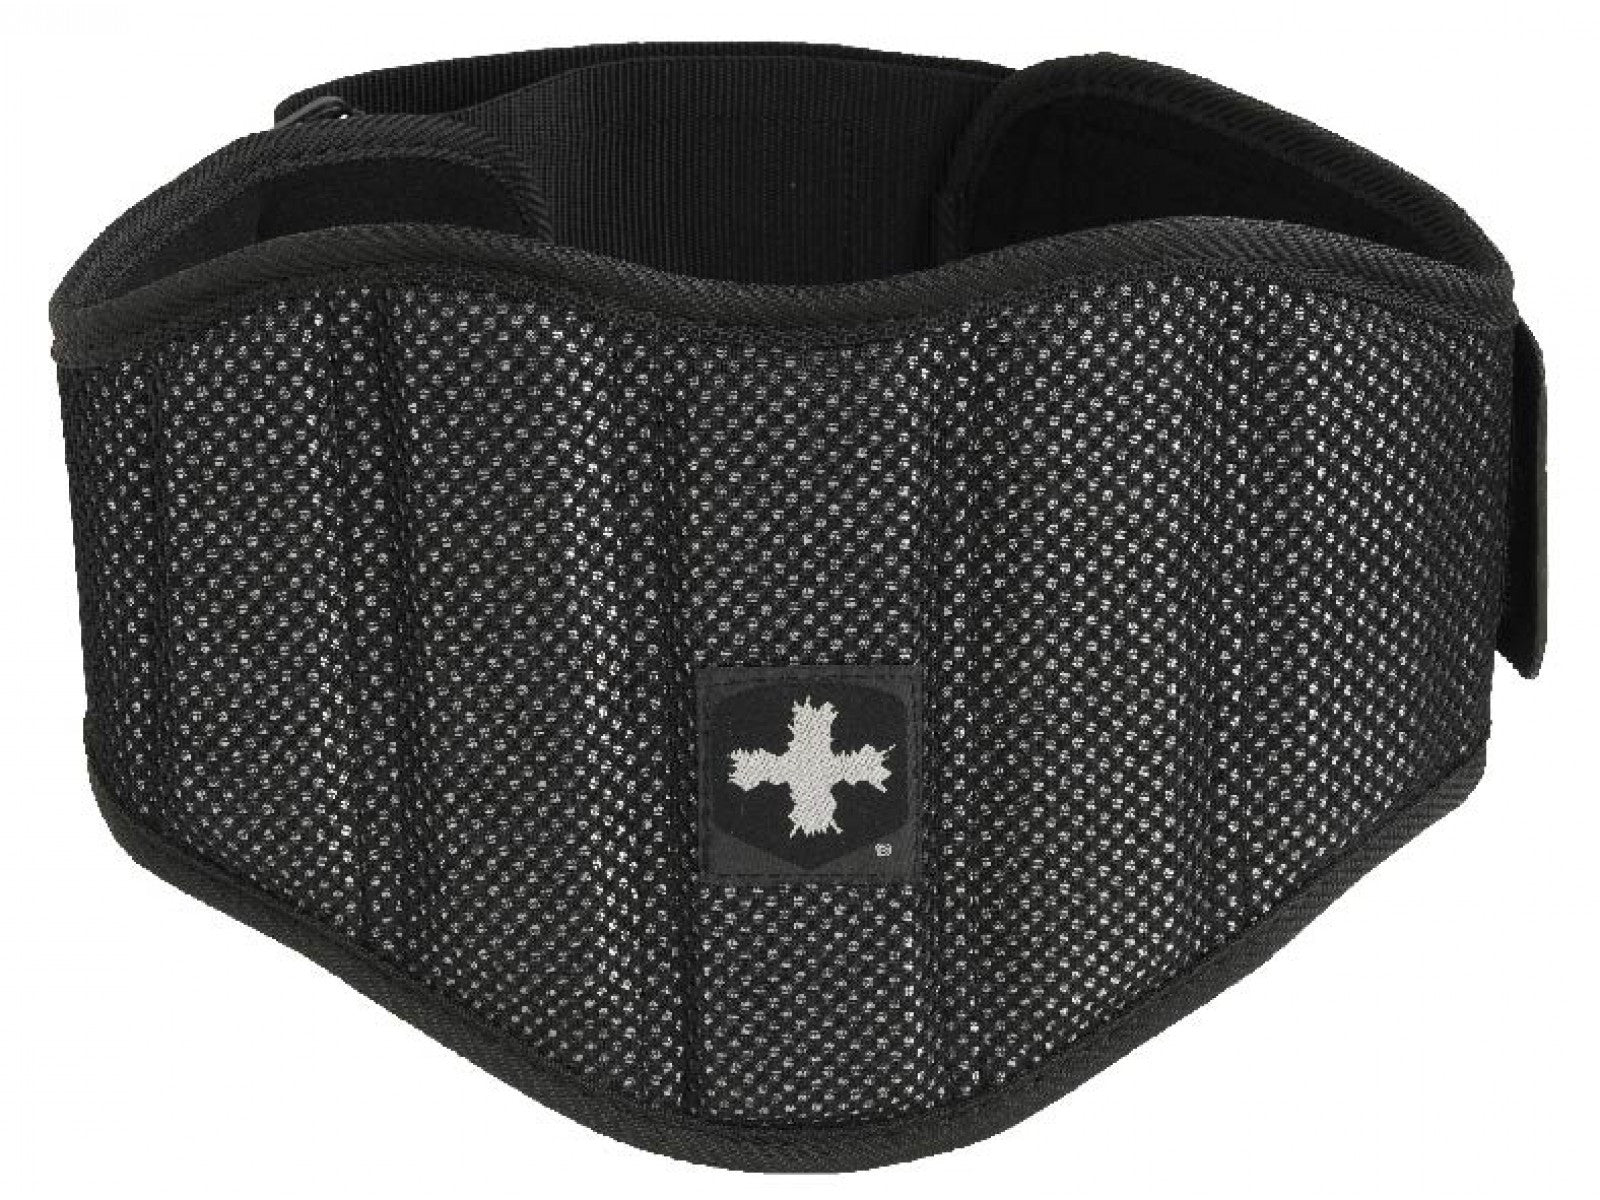 "7.5"" Firm Fit Contour Belt"